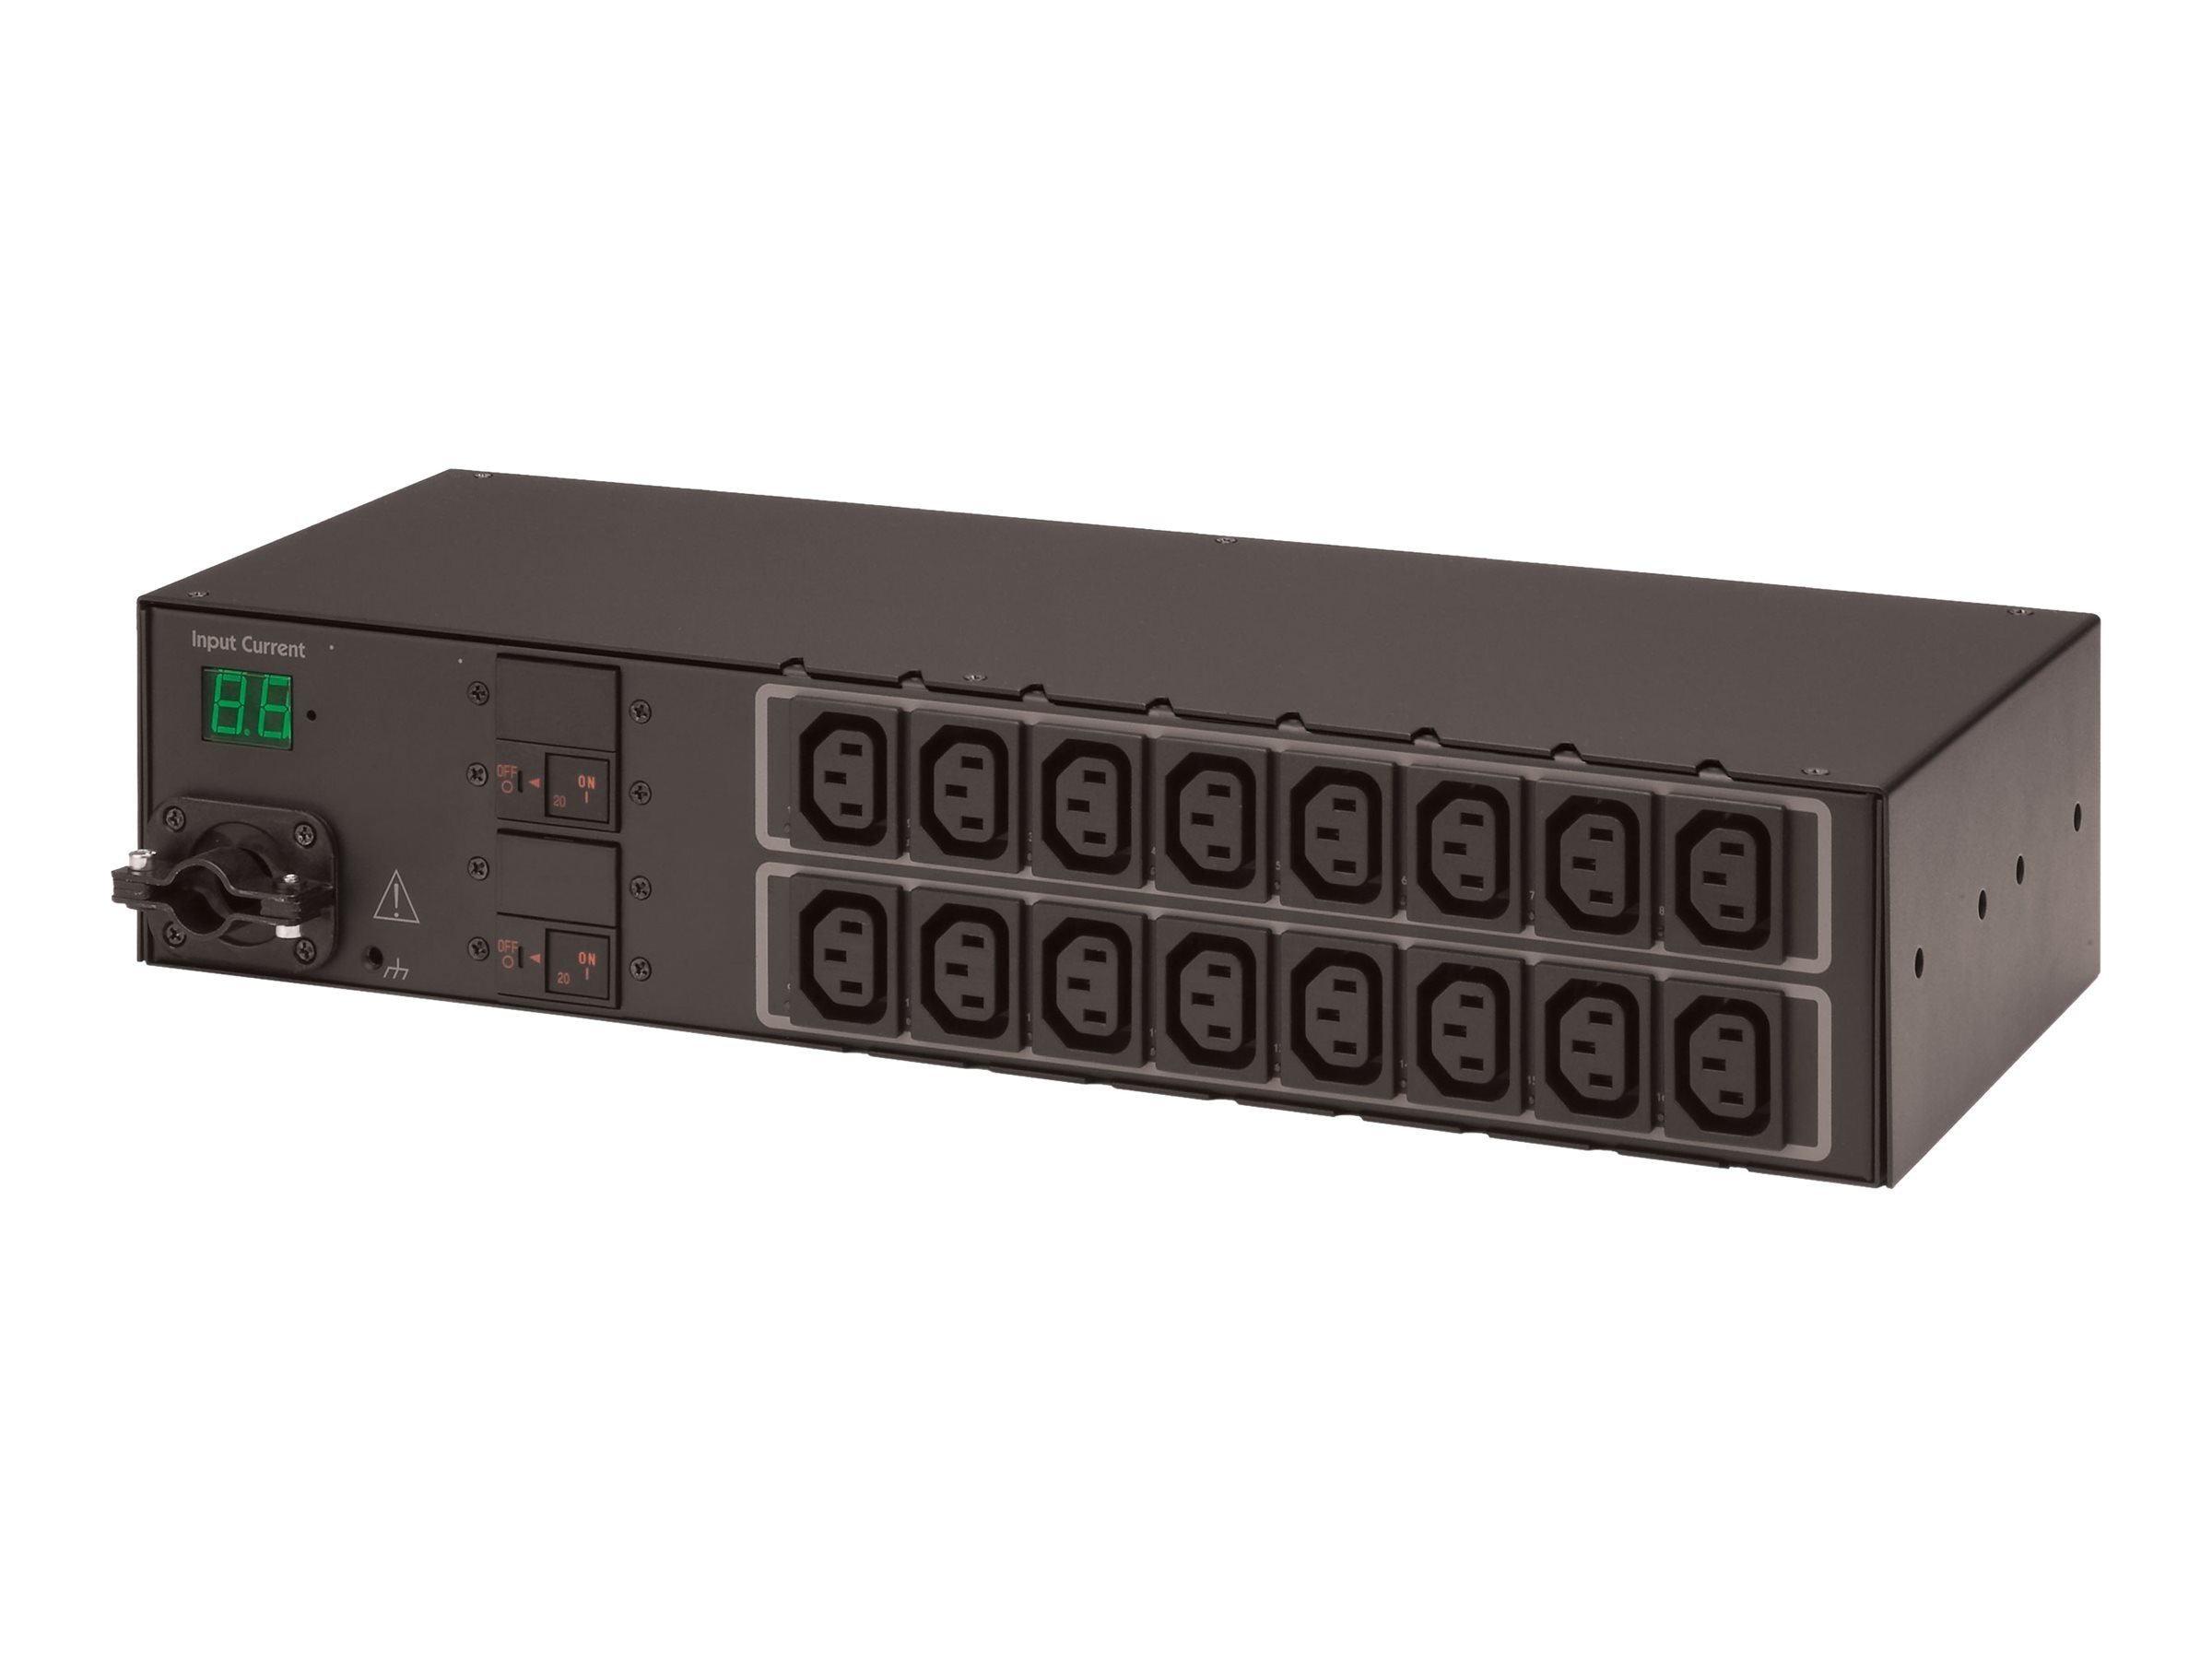 Server Technology CWG-16H2A454 Image 1